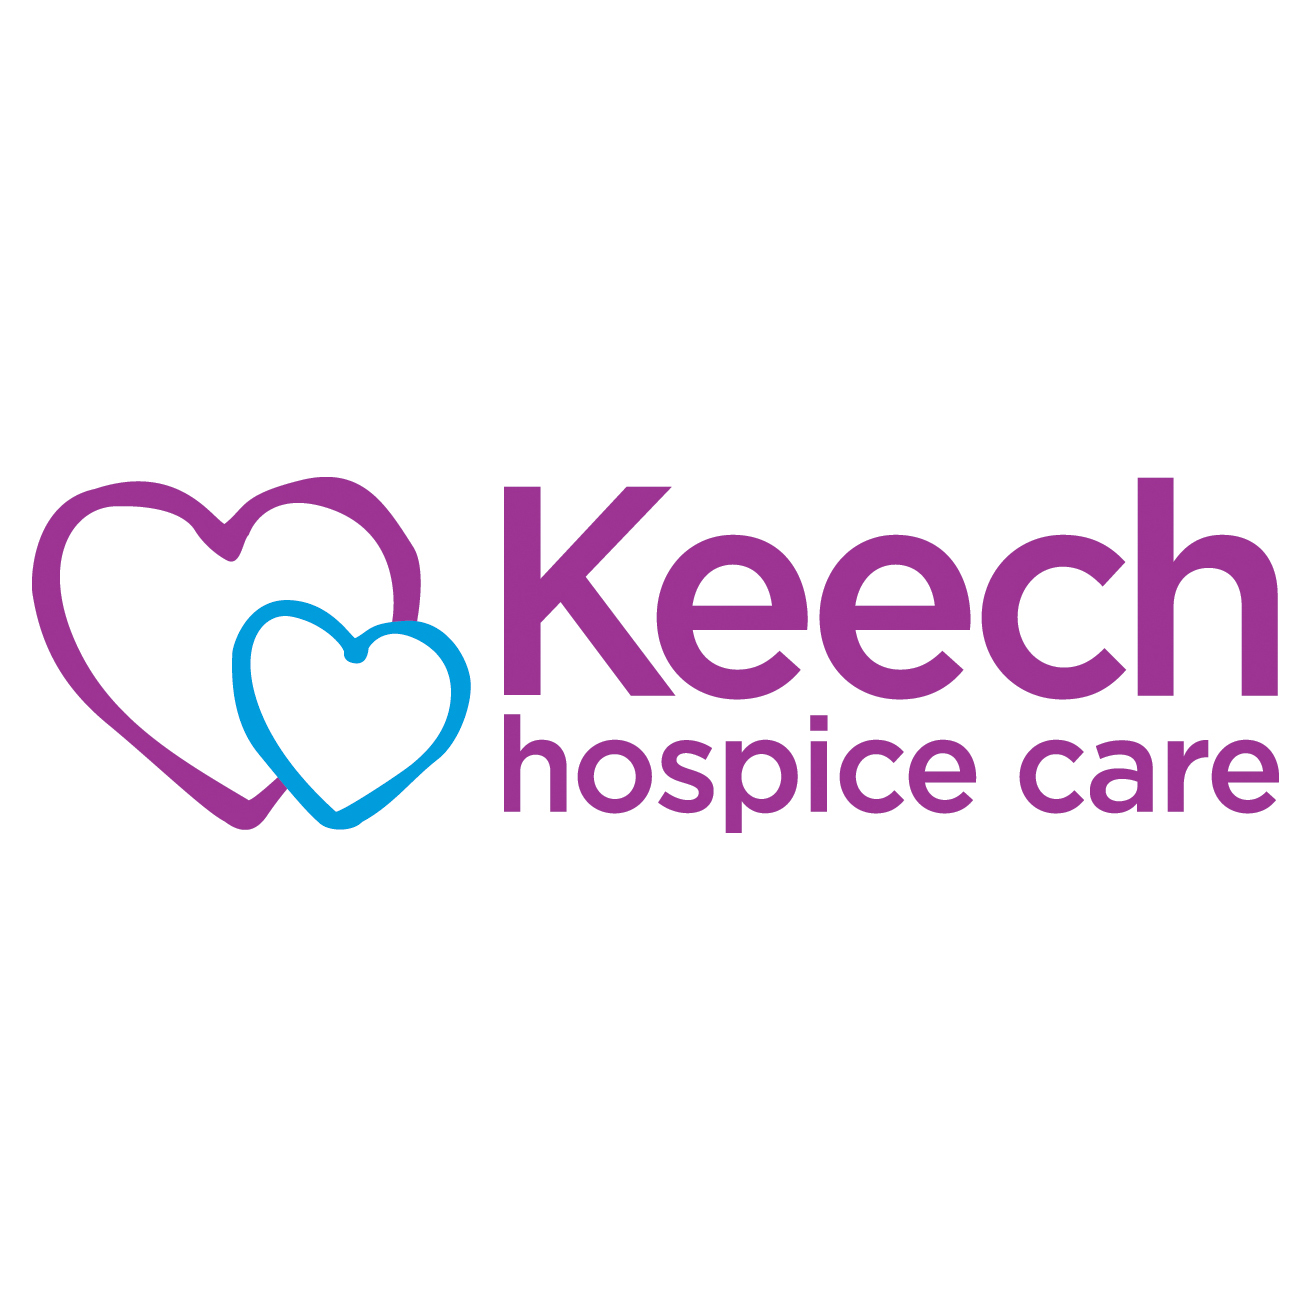 Keech Hospice Care - Ryebridge was the key sponsor for a 2017 cycle ride from Luton to Amsterdam, an event which raised tens of thousands of pounds for this Luton hospice.